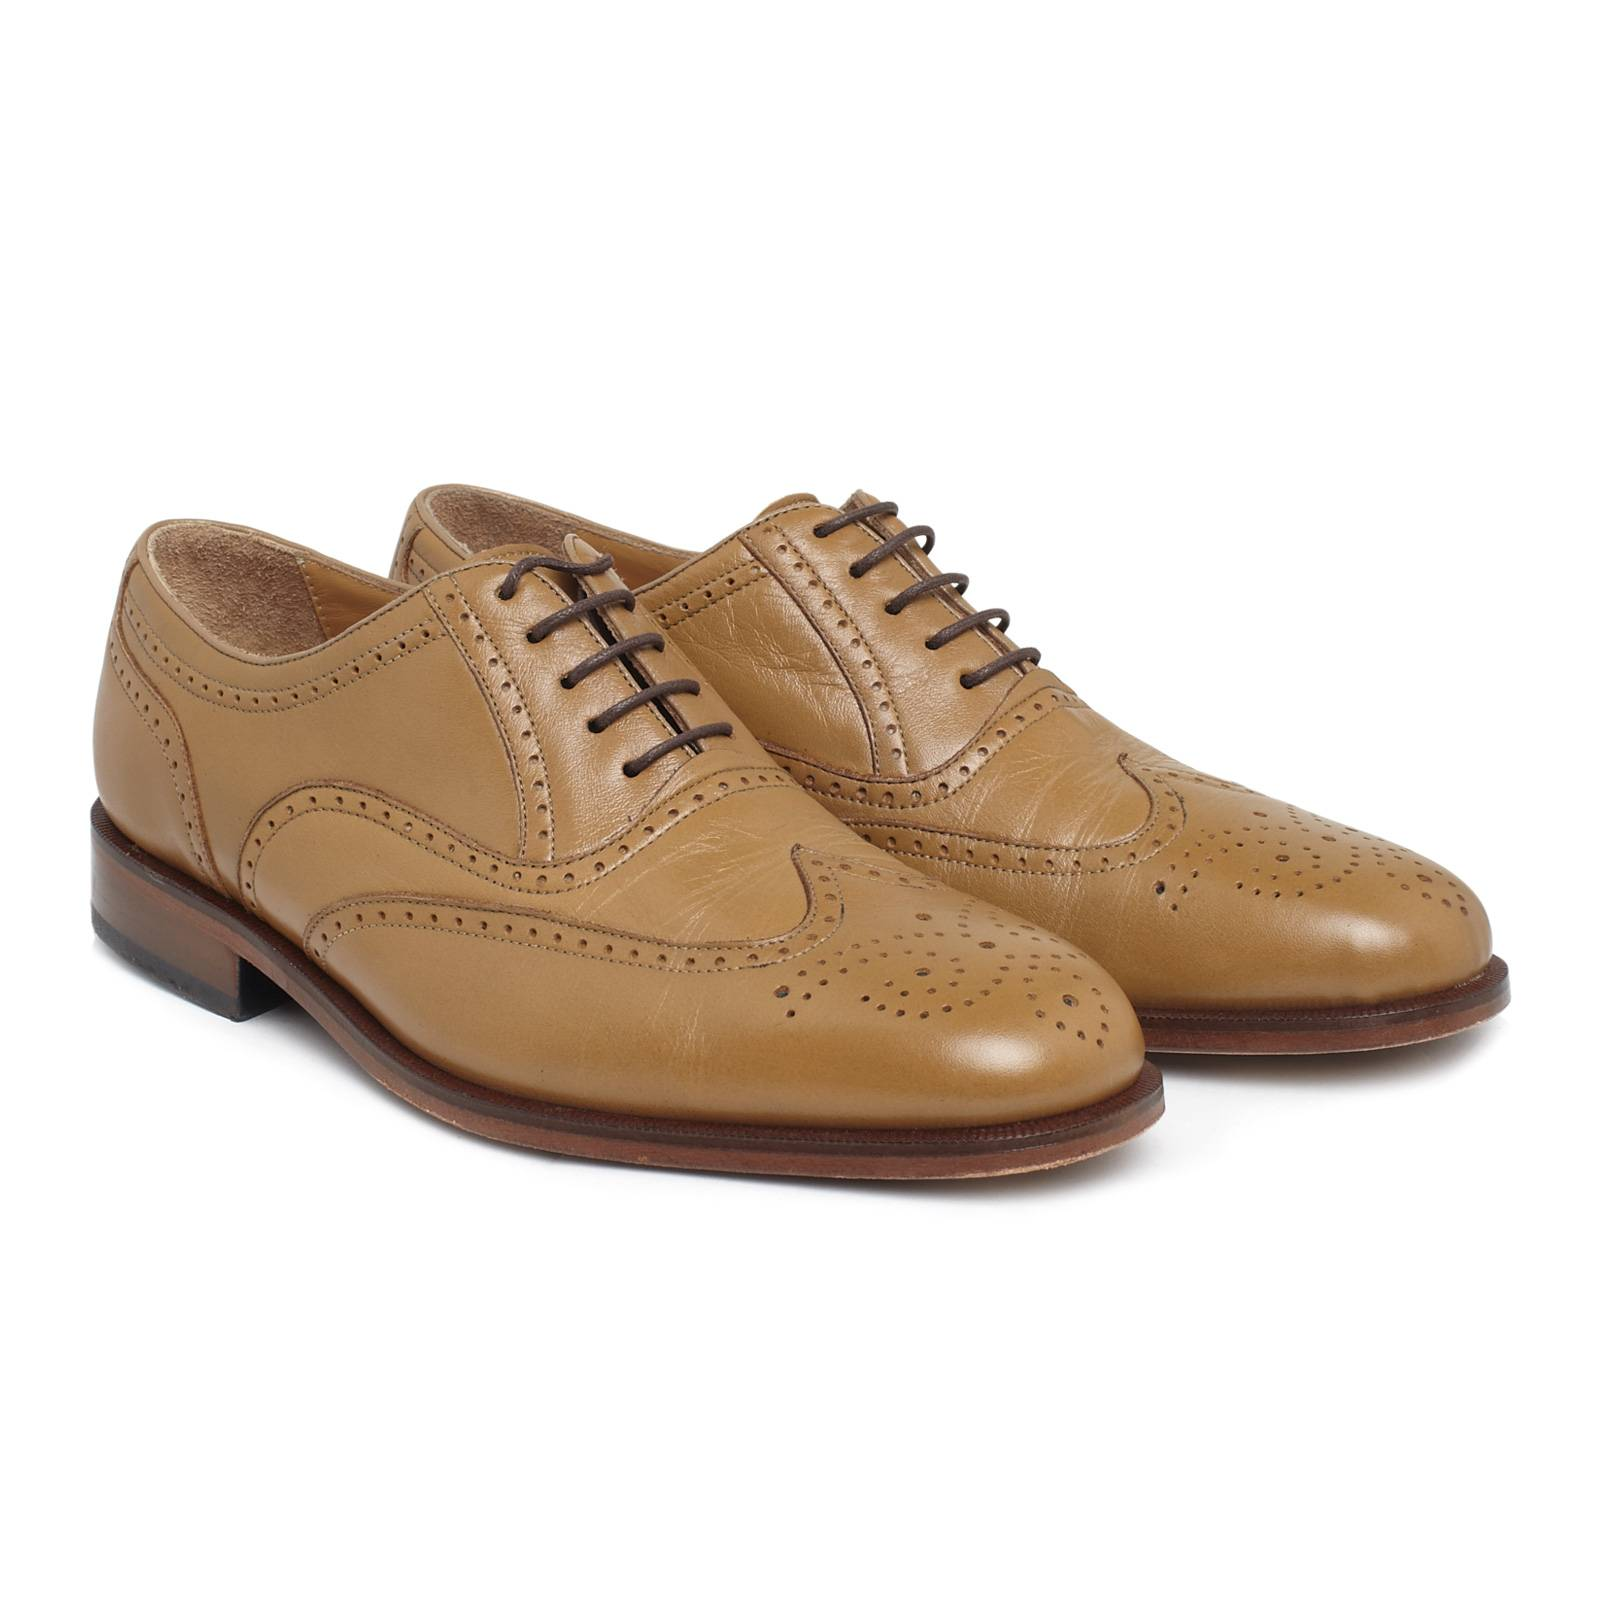 Броги Brogues от MercLondon